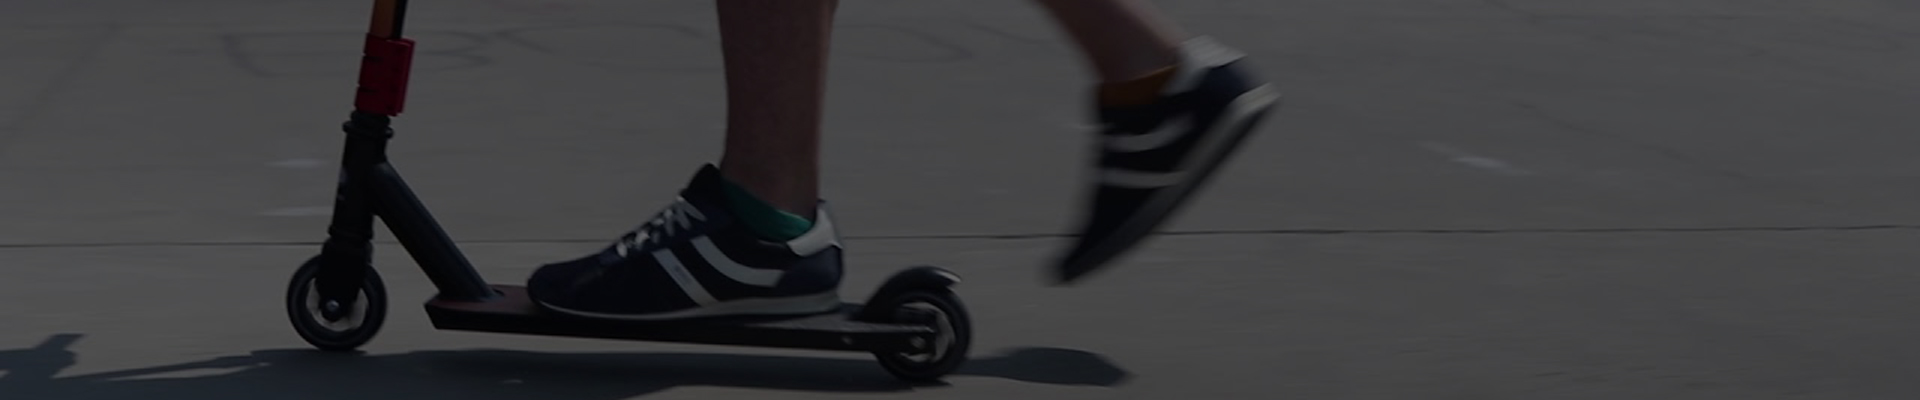 Scooters & Equipment online | Buy Now on Xtreme-Skate.com